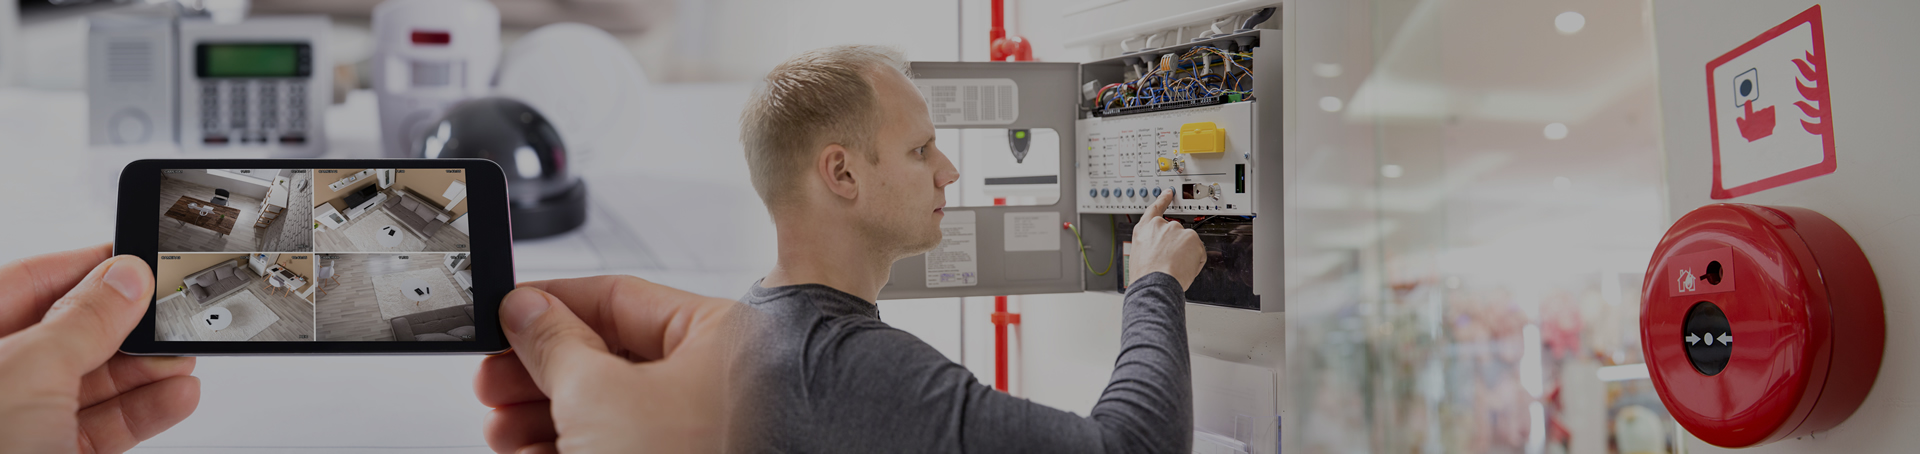 Commercial, Industrial & Residential, Electrical and Security Services